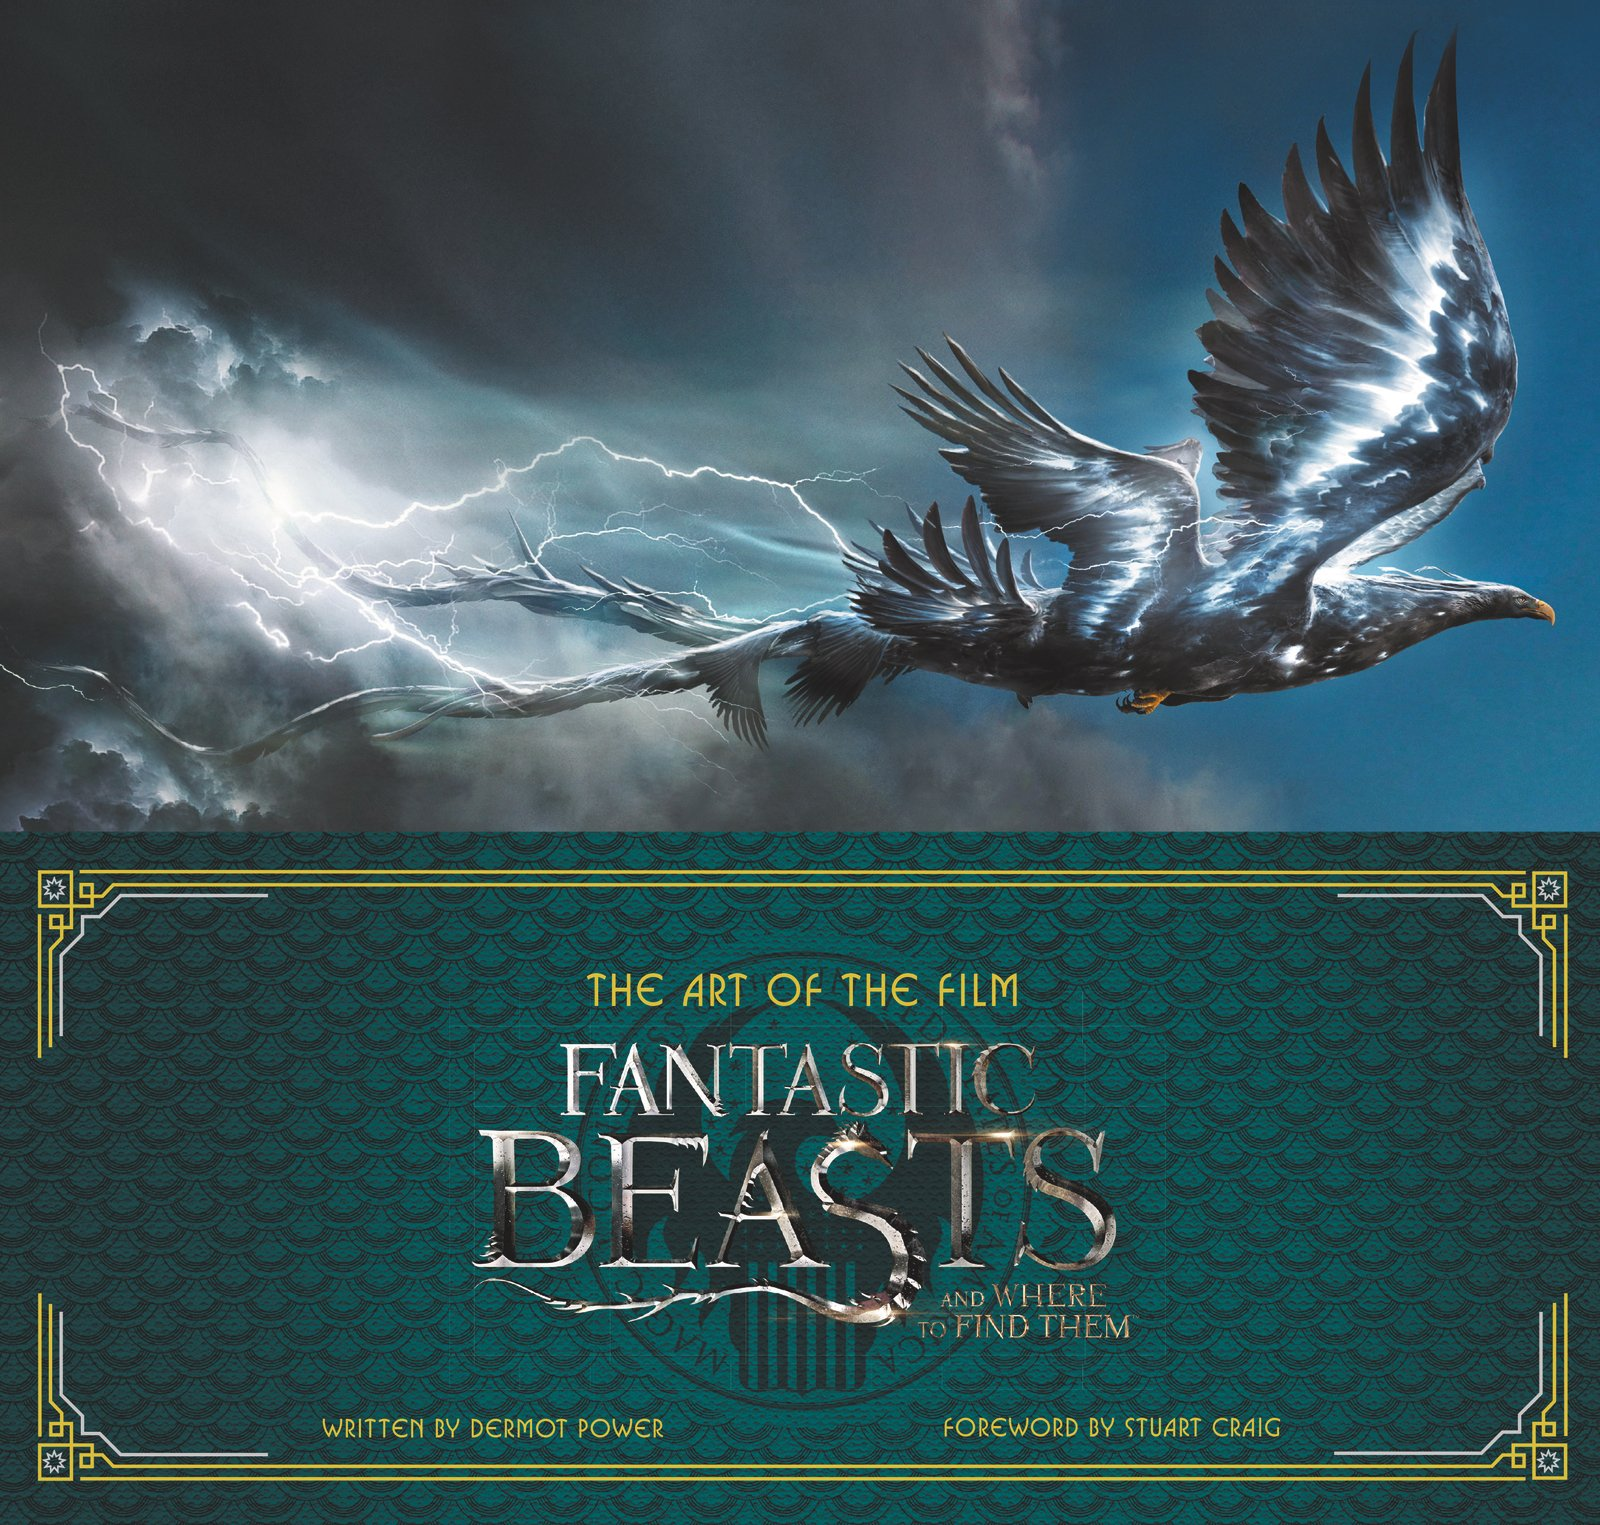 The Art of the Film: Fantastic Beasts and Where to Find Them – HPB